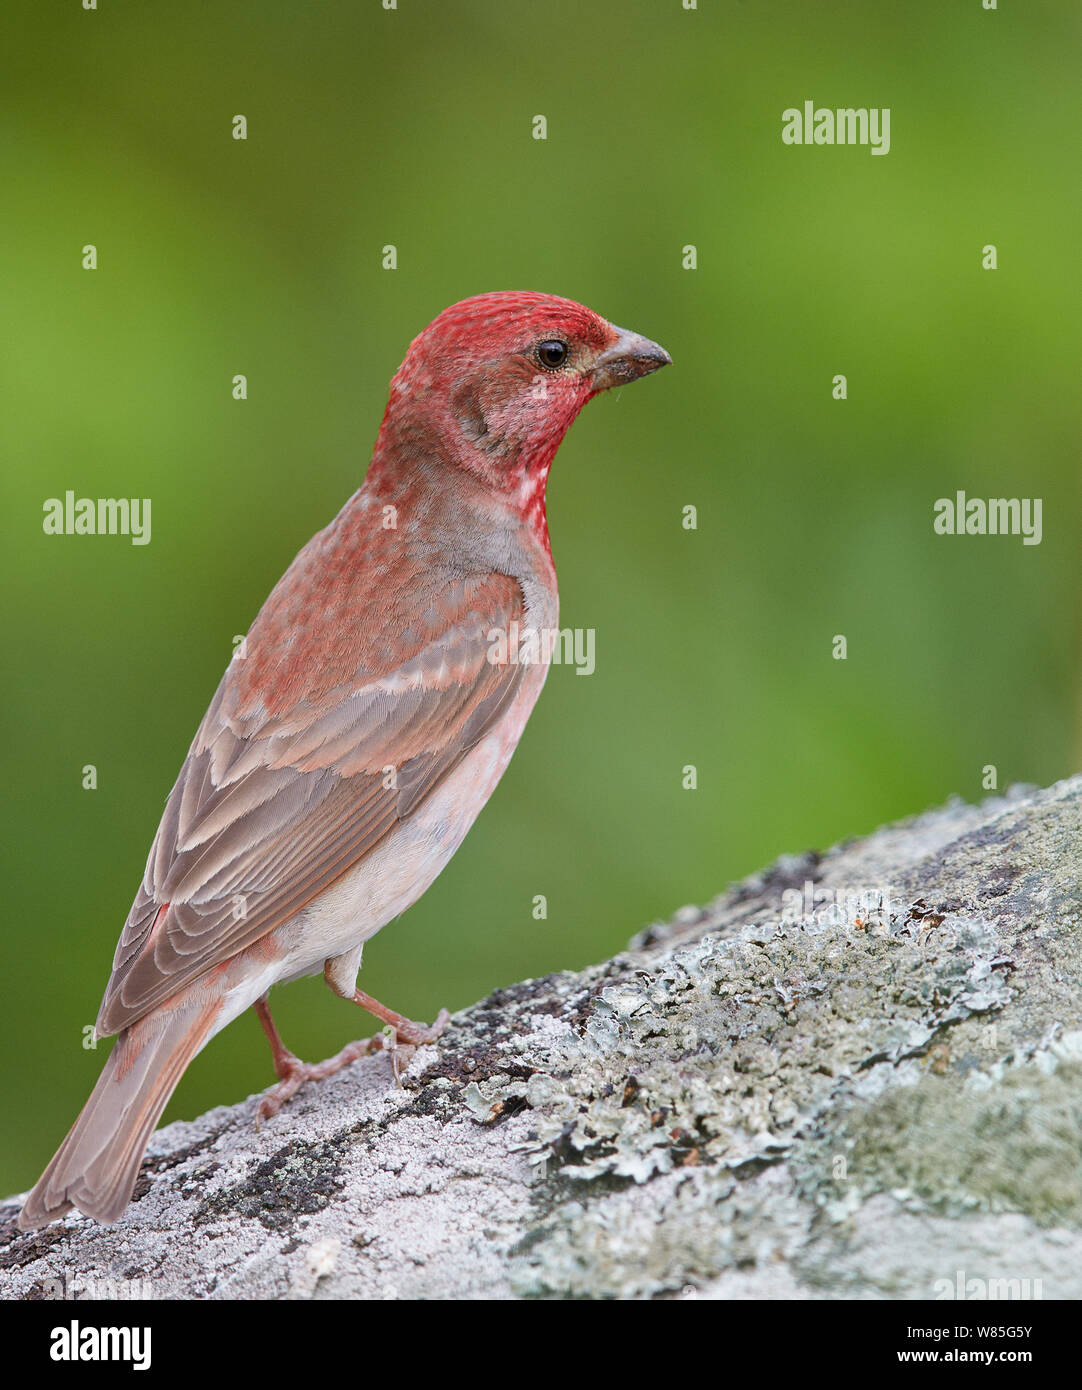 Common rosefinch (Carpodacus erythrinus) adult male Joensuu, Finland, May Stock Photo